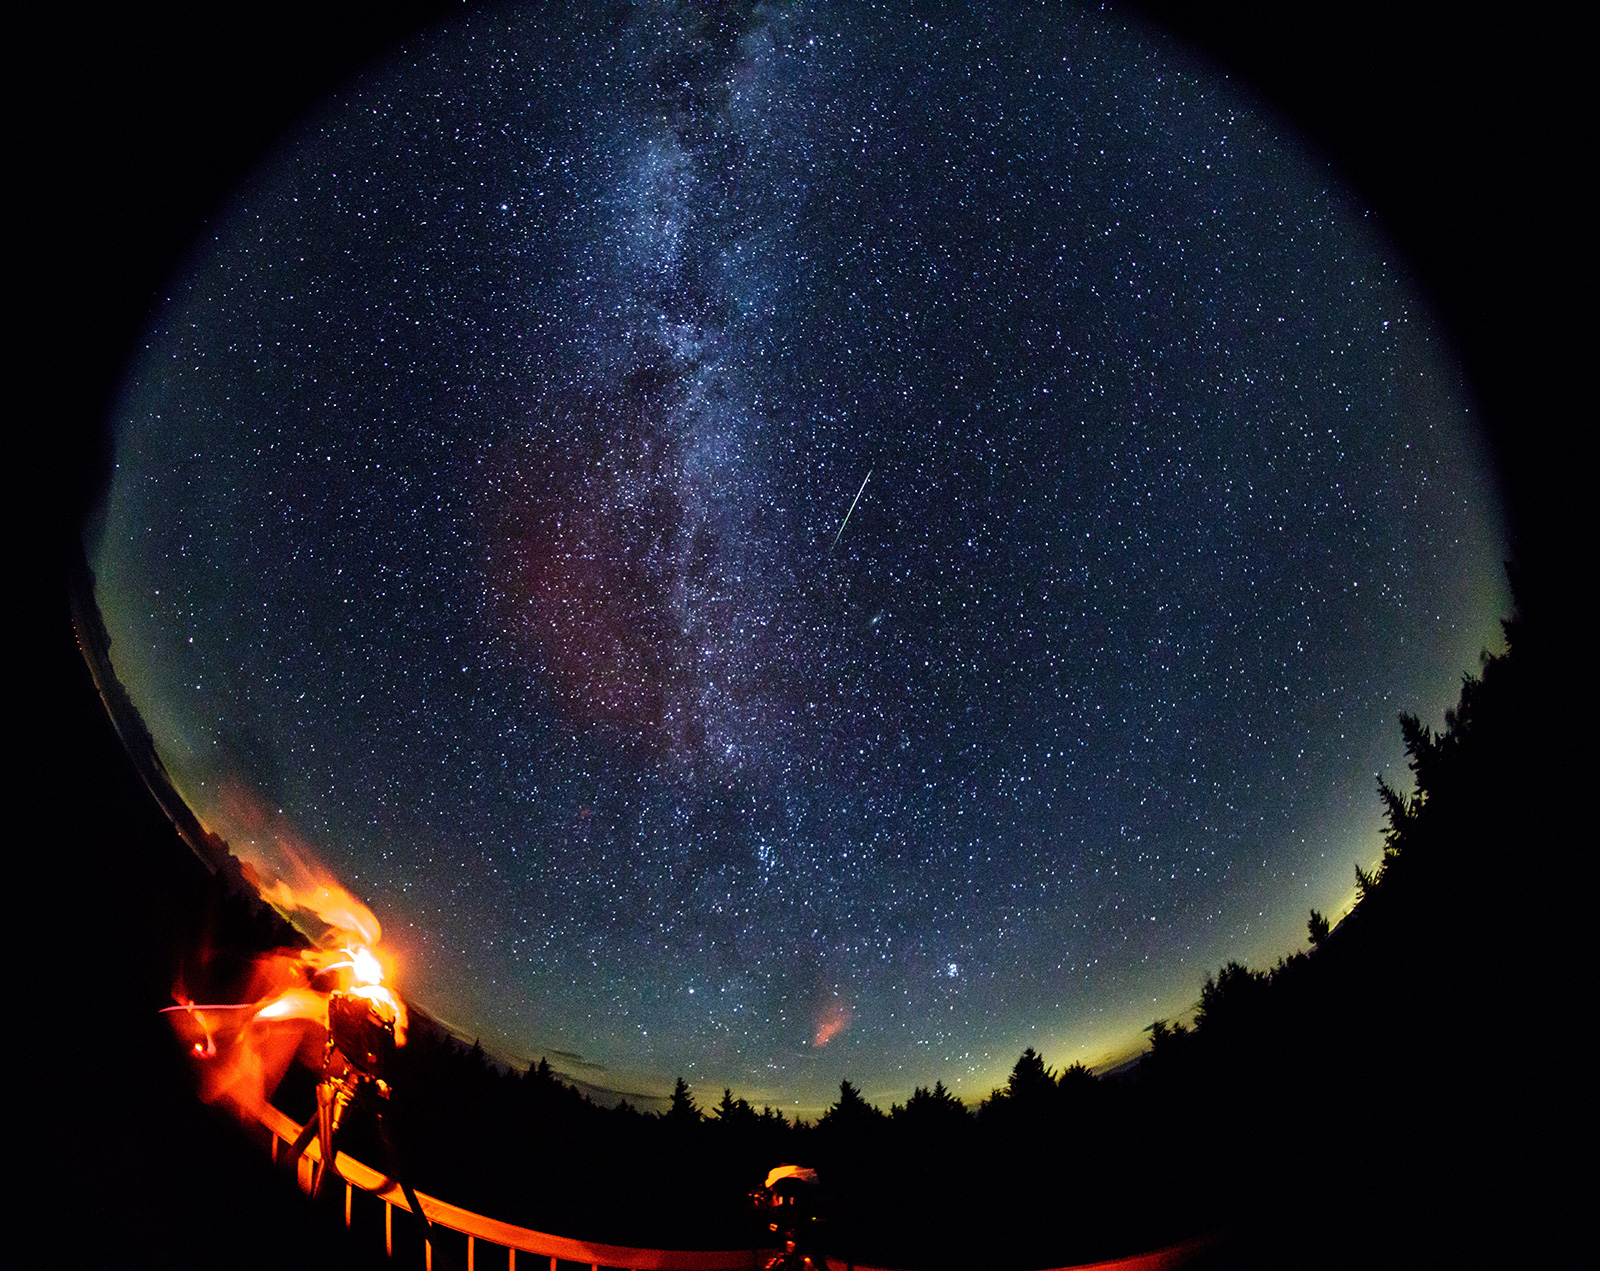 Meteor with Milky Way in the background.